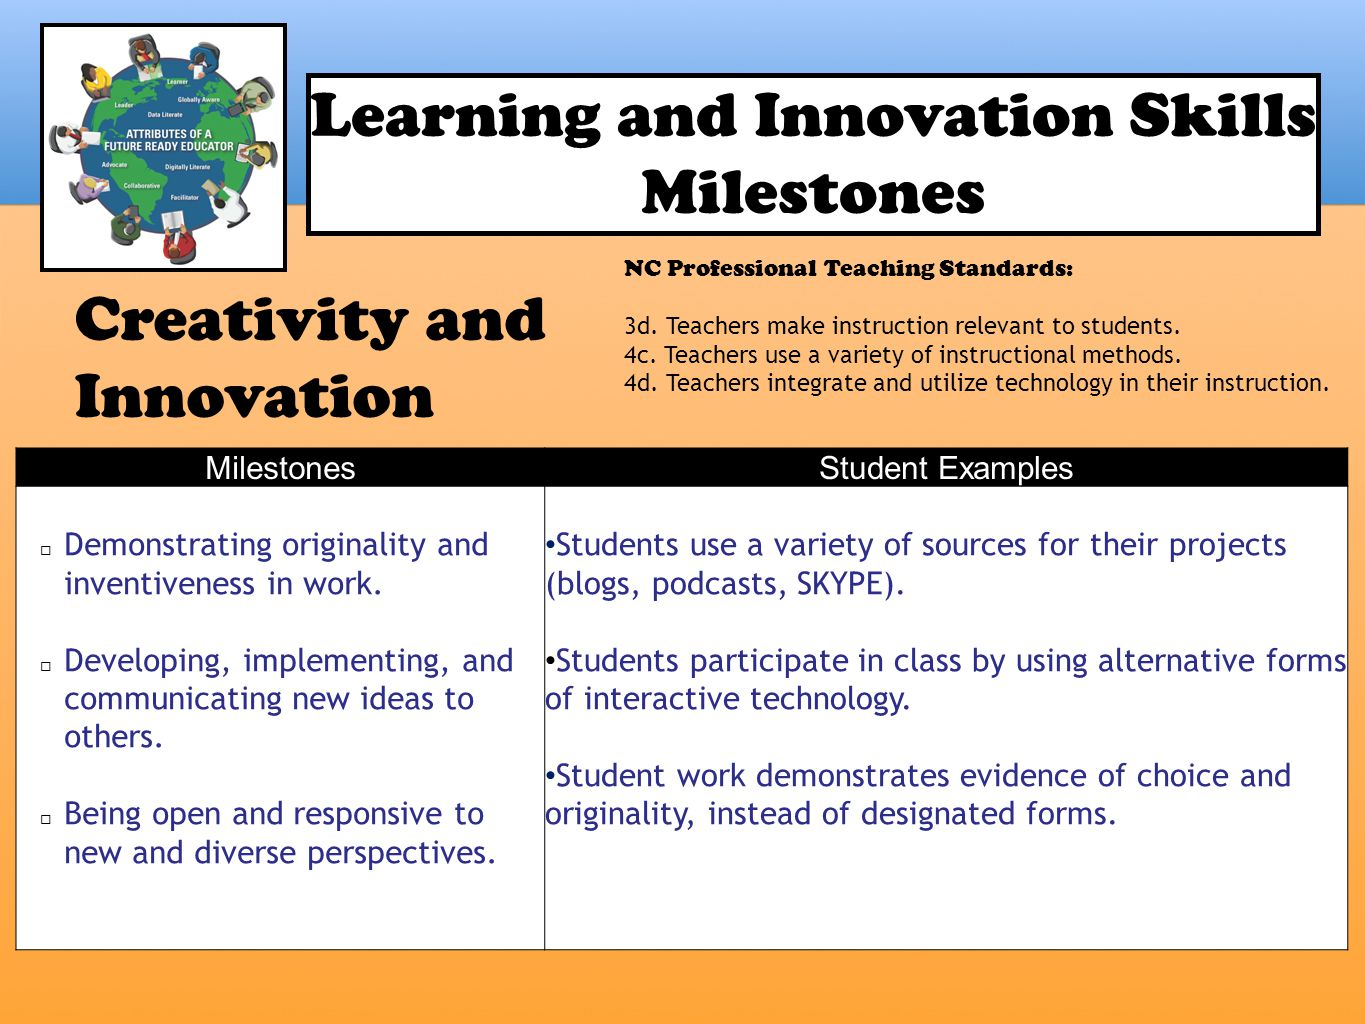 Reaching and Preparing 21st Century Learners - ppt video online download